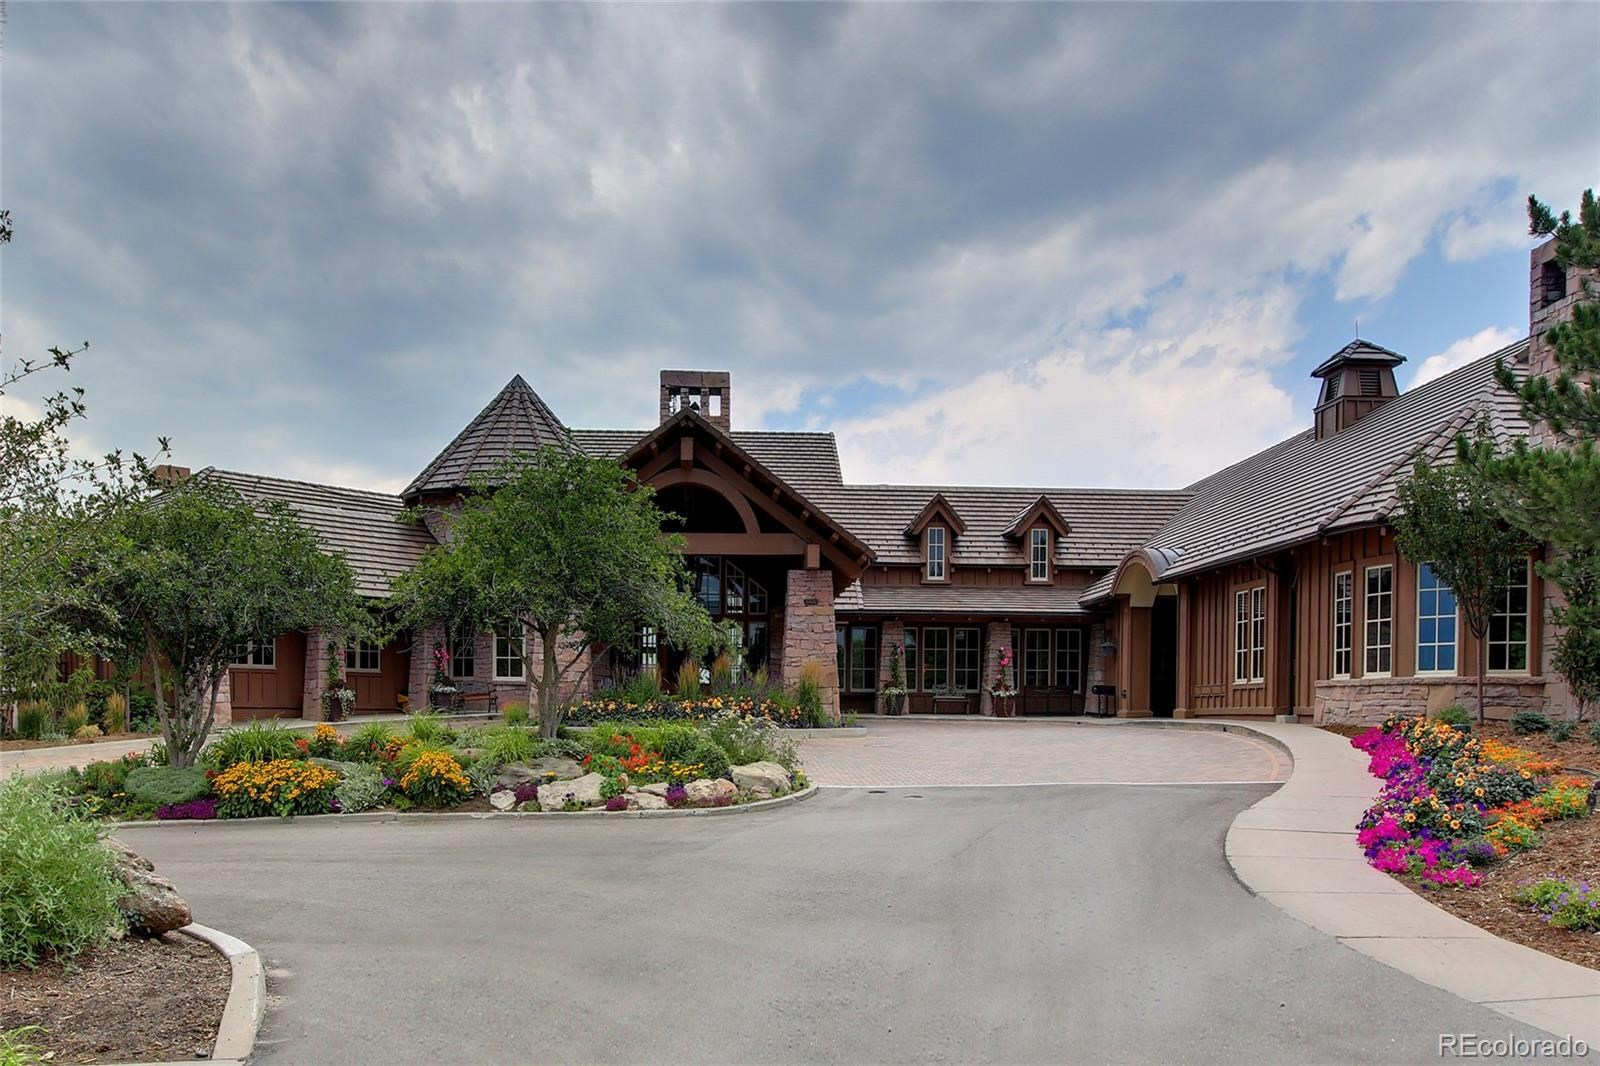 MLS# 7138743 - 17 - 965 Country Club Parkway, Castle Rock, CO 80108